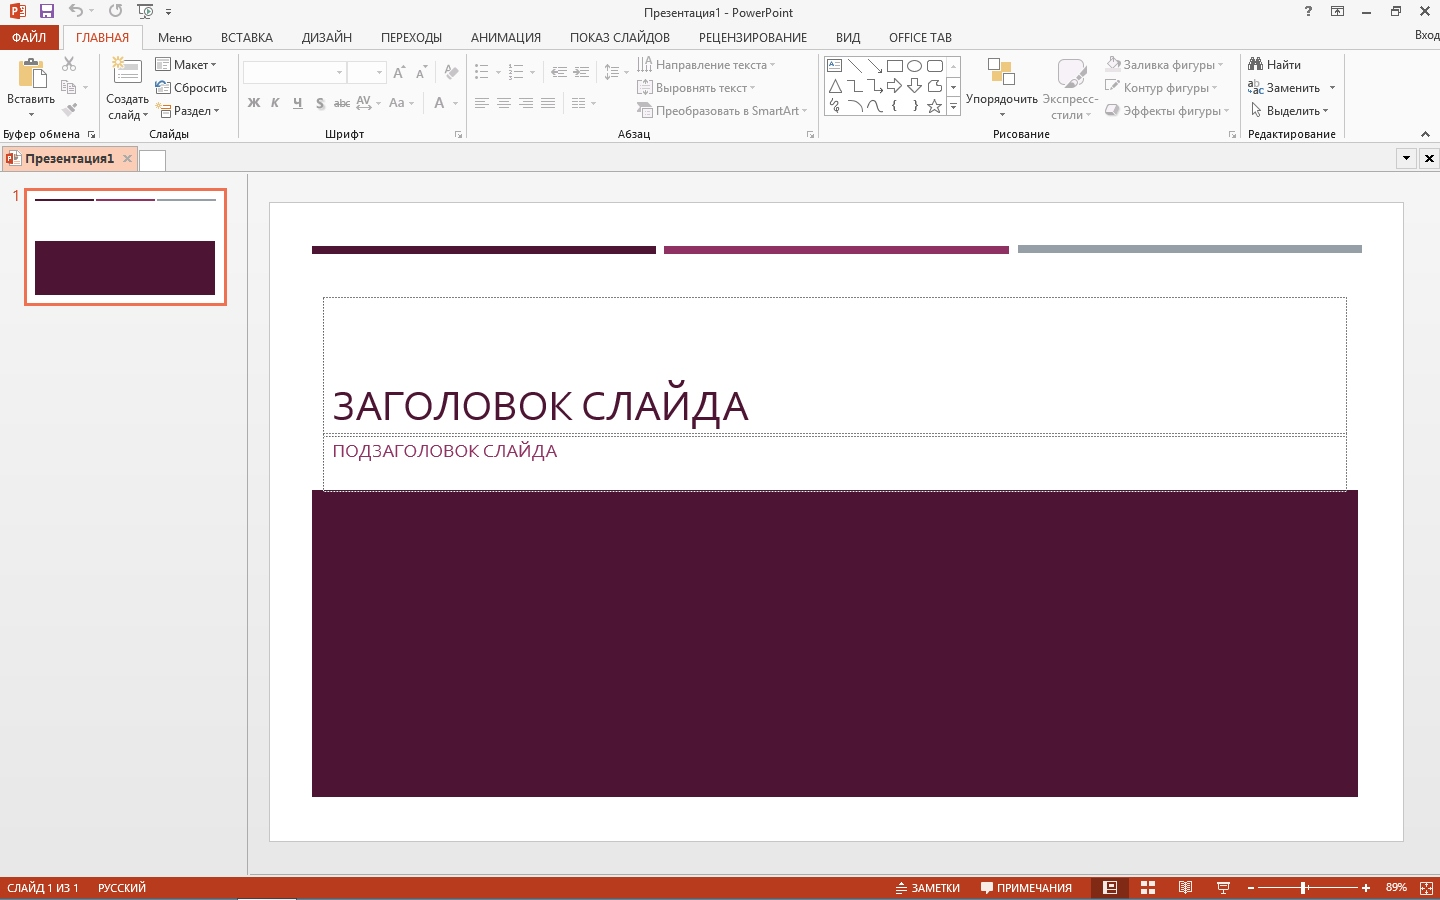 Microsoft Office 2013 SP1 Professional Plus + Visio Pro + Project Pro 15.0.4953.1000 RePack by KpoJIuK (2017) Multi / Русский